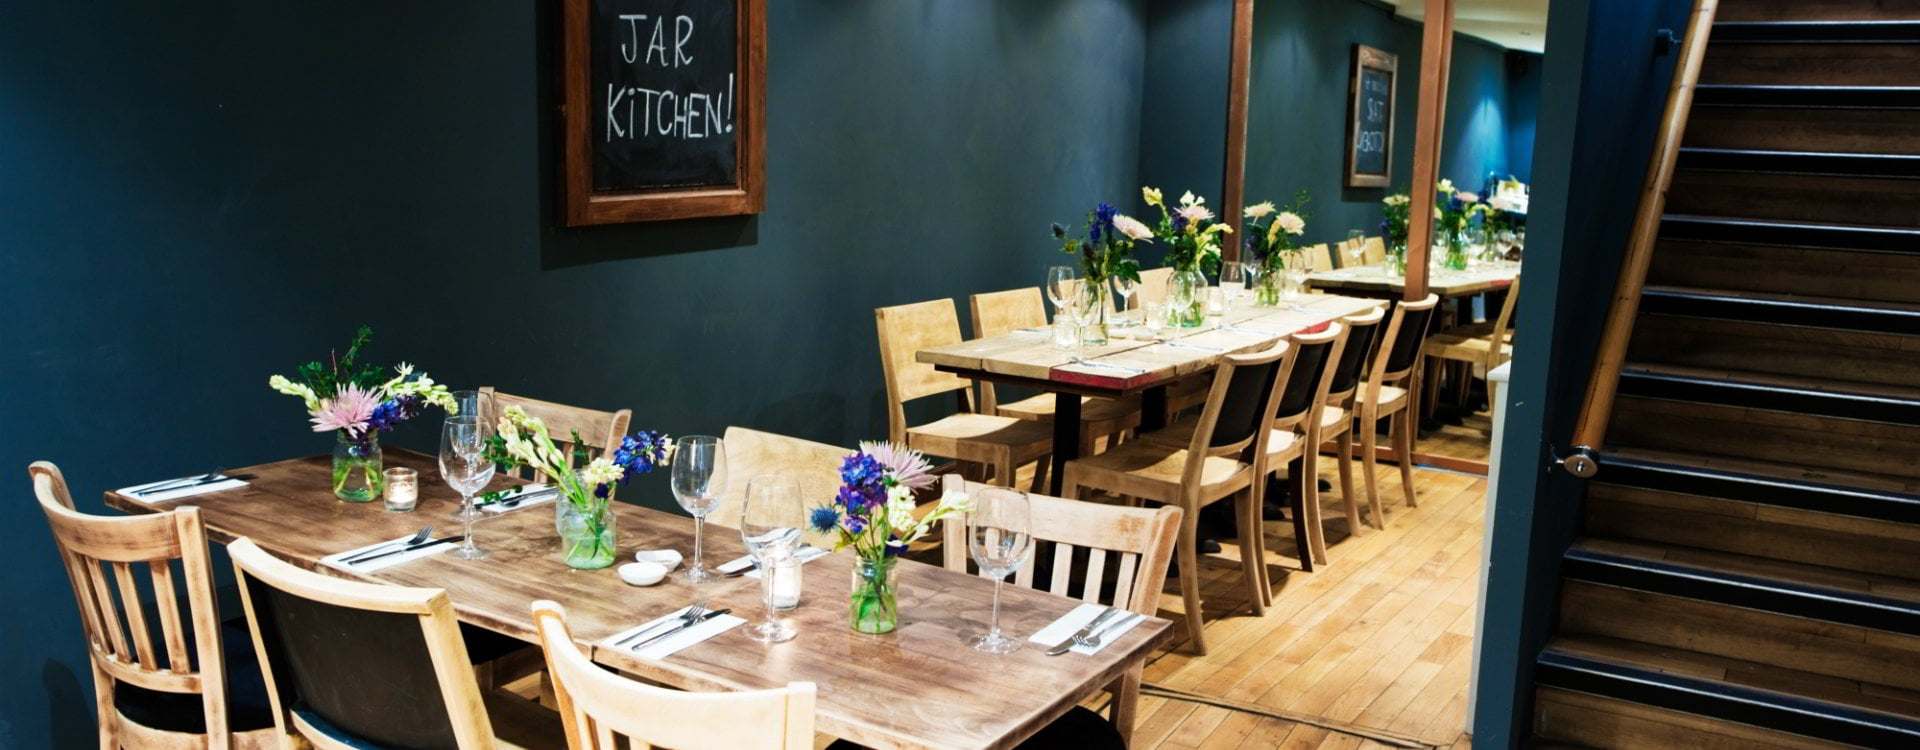 Jar kitchen a cozy modern european eatery in covent garden for Covent garden pool table